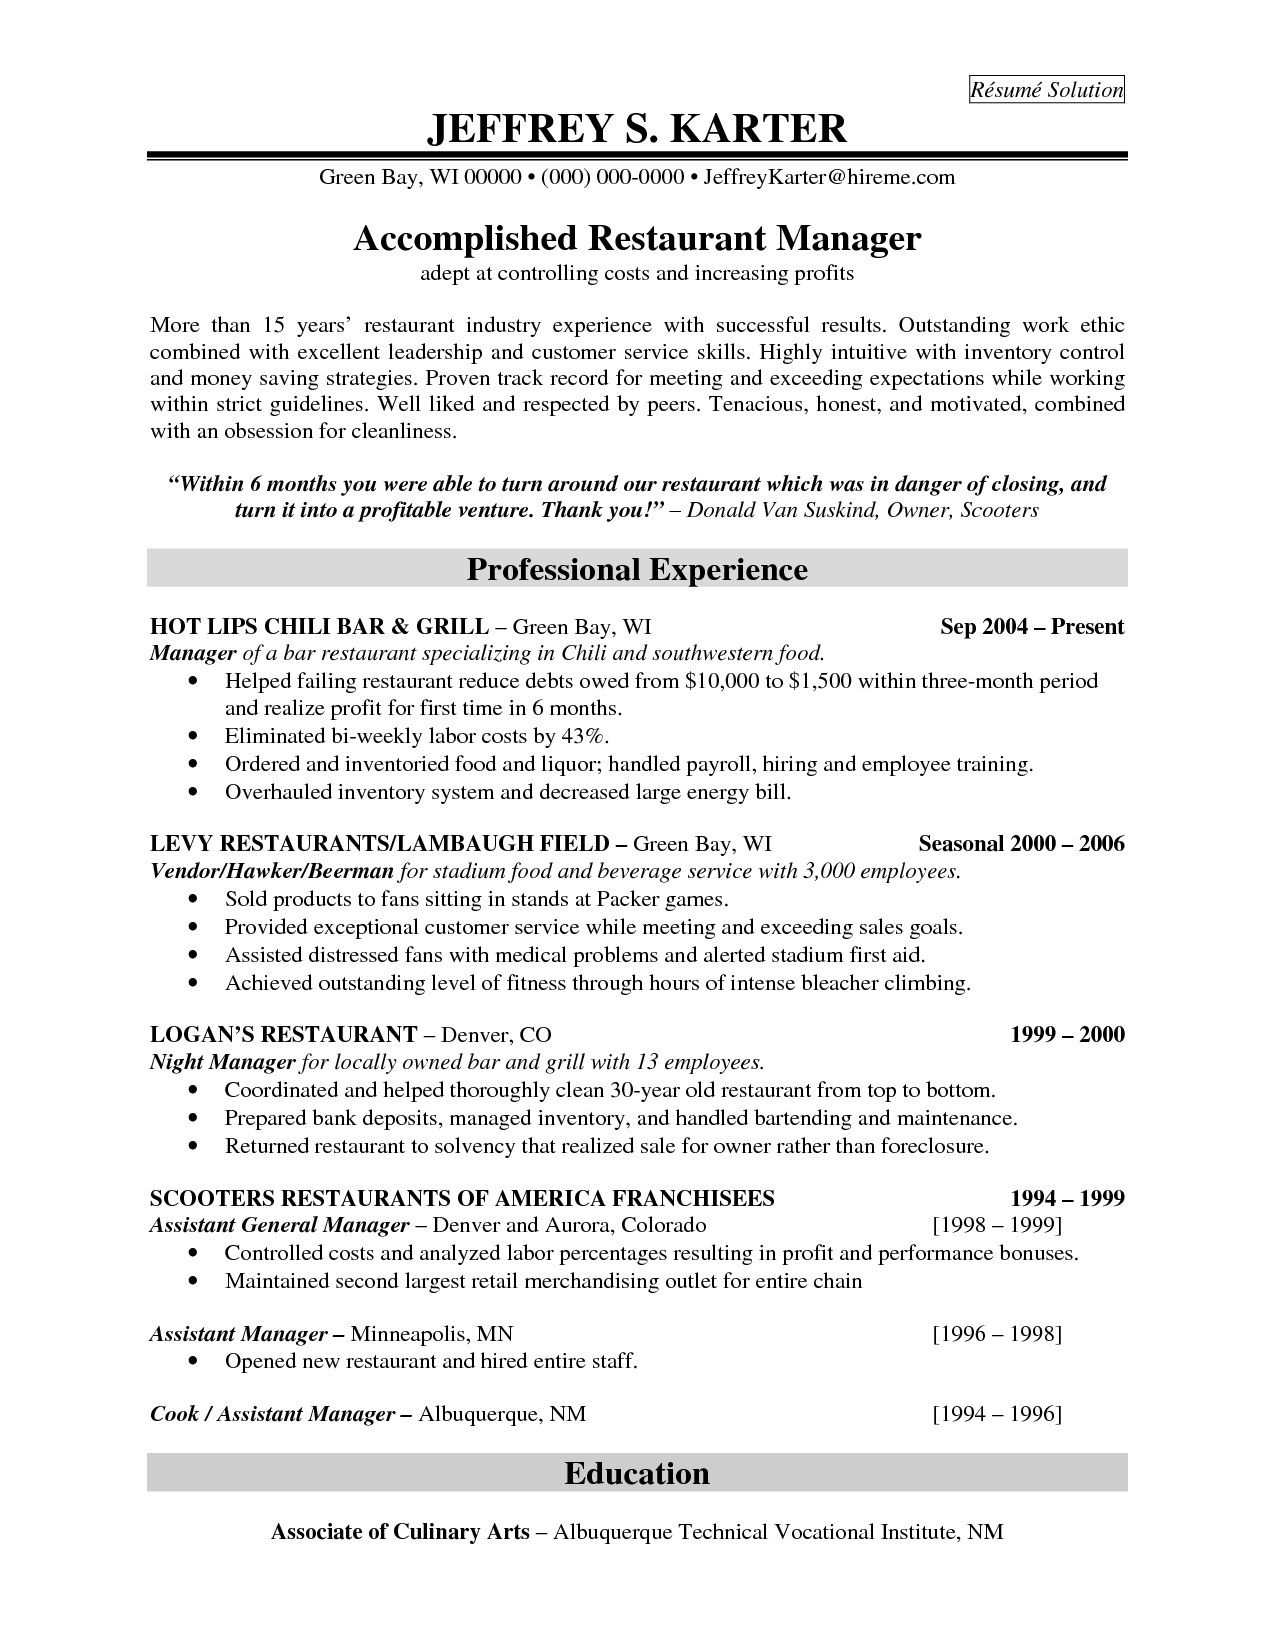 Professional Experience For Accomplidhed Restaurant